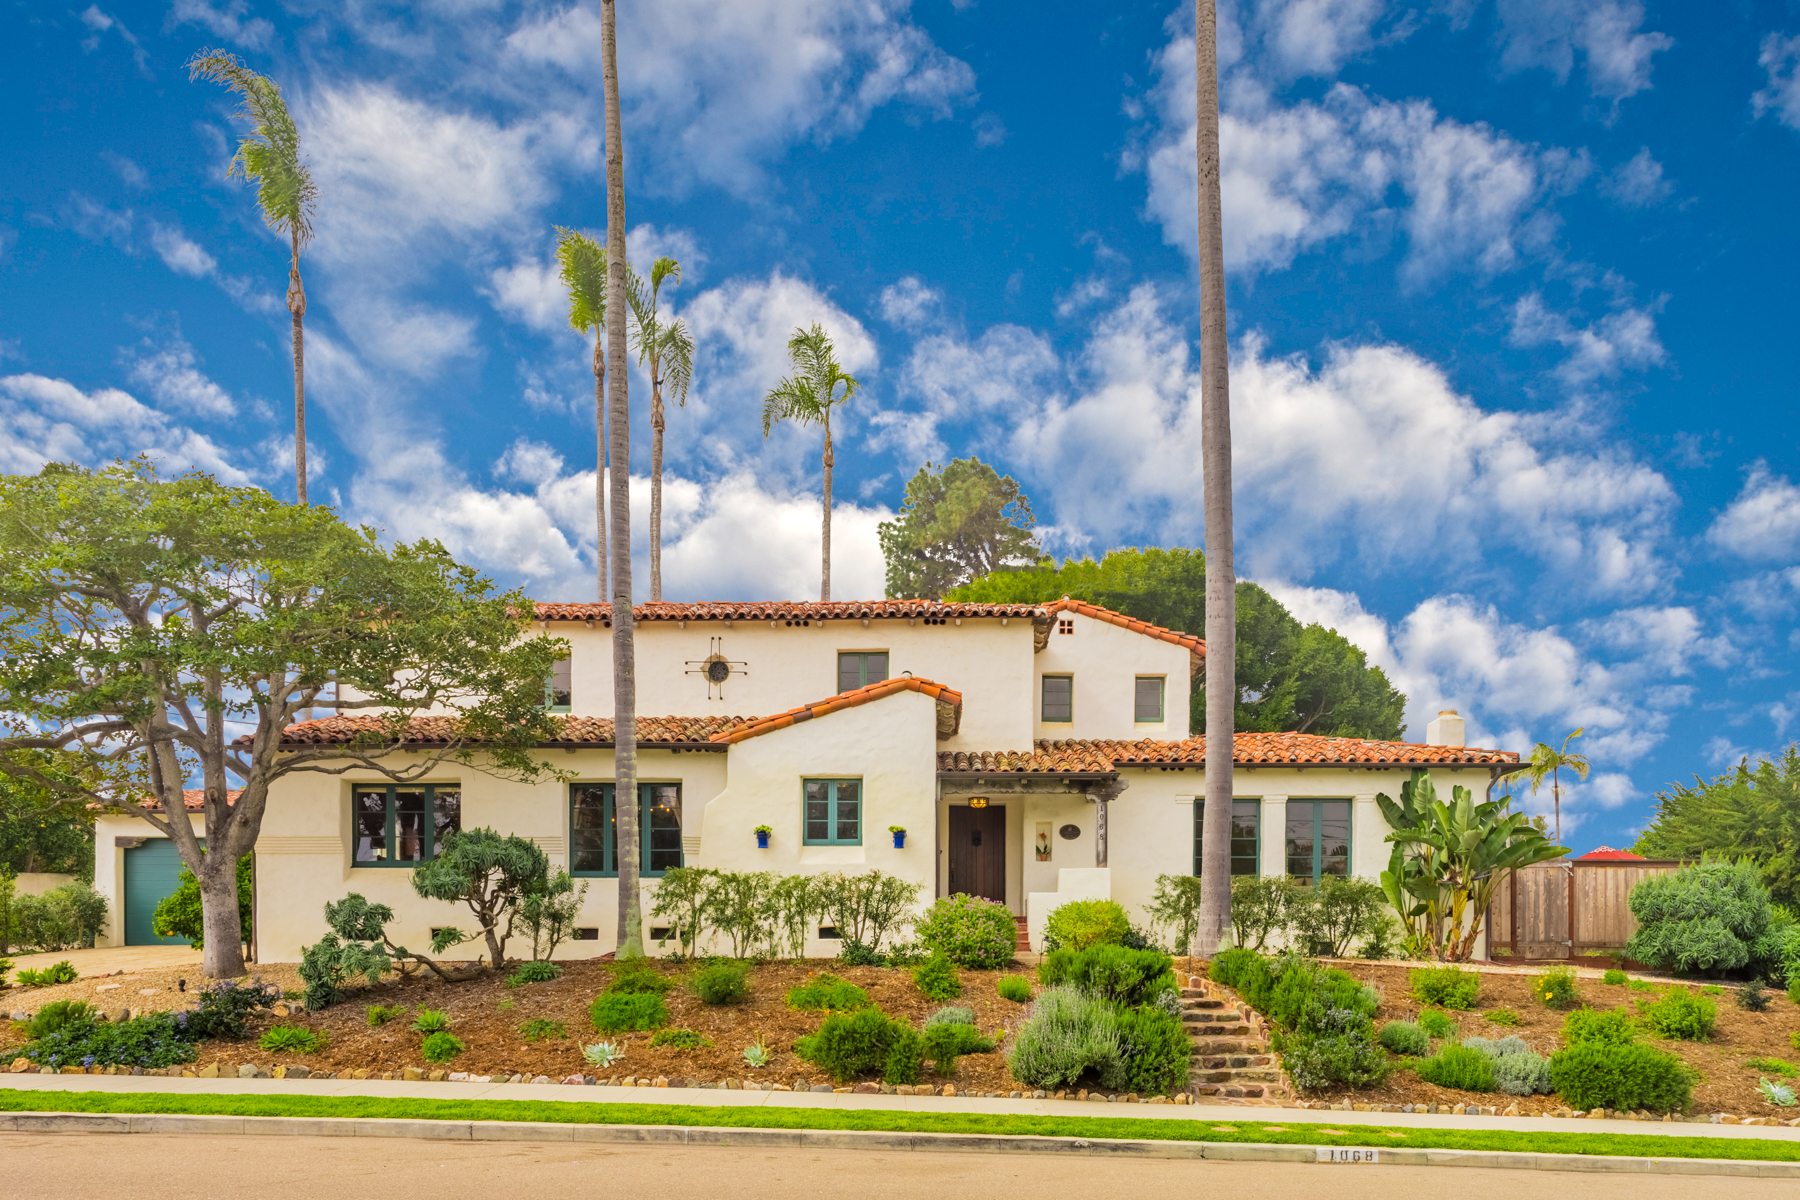 Single Family Home for Sale at 1068 Santa Barbara Street San Diego, California 92107 United States